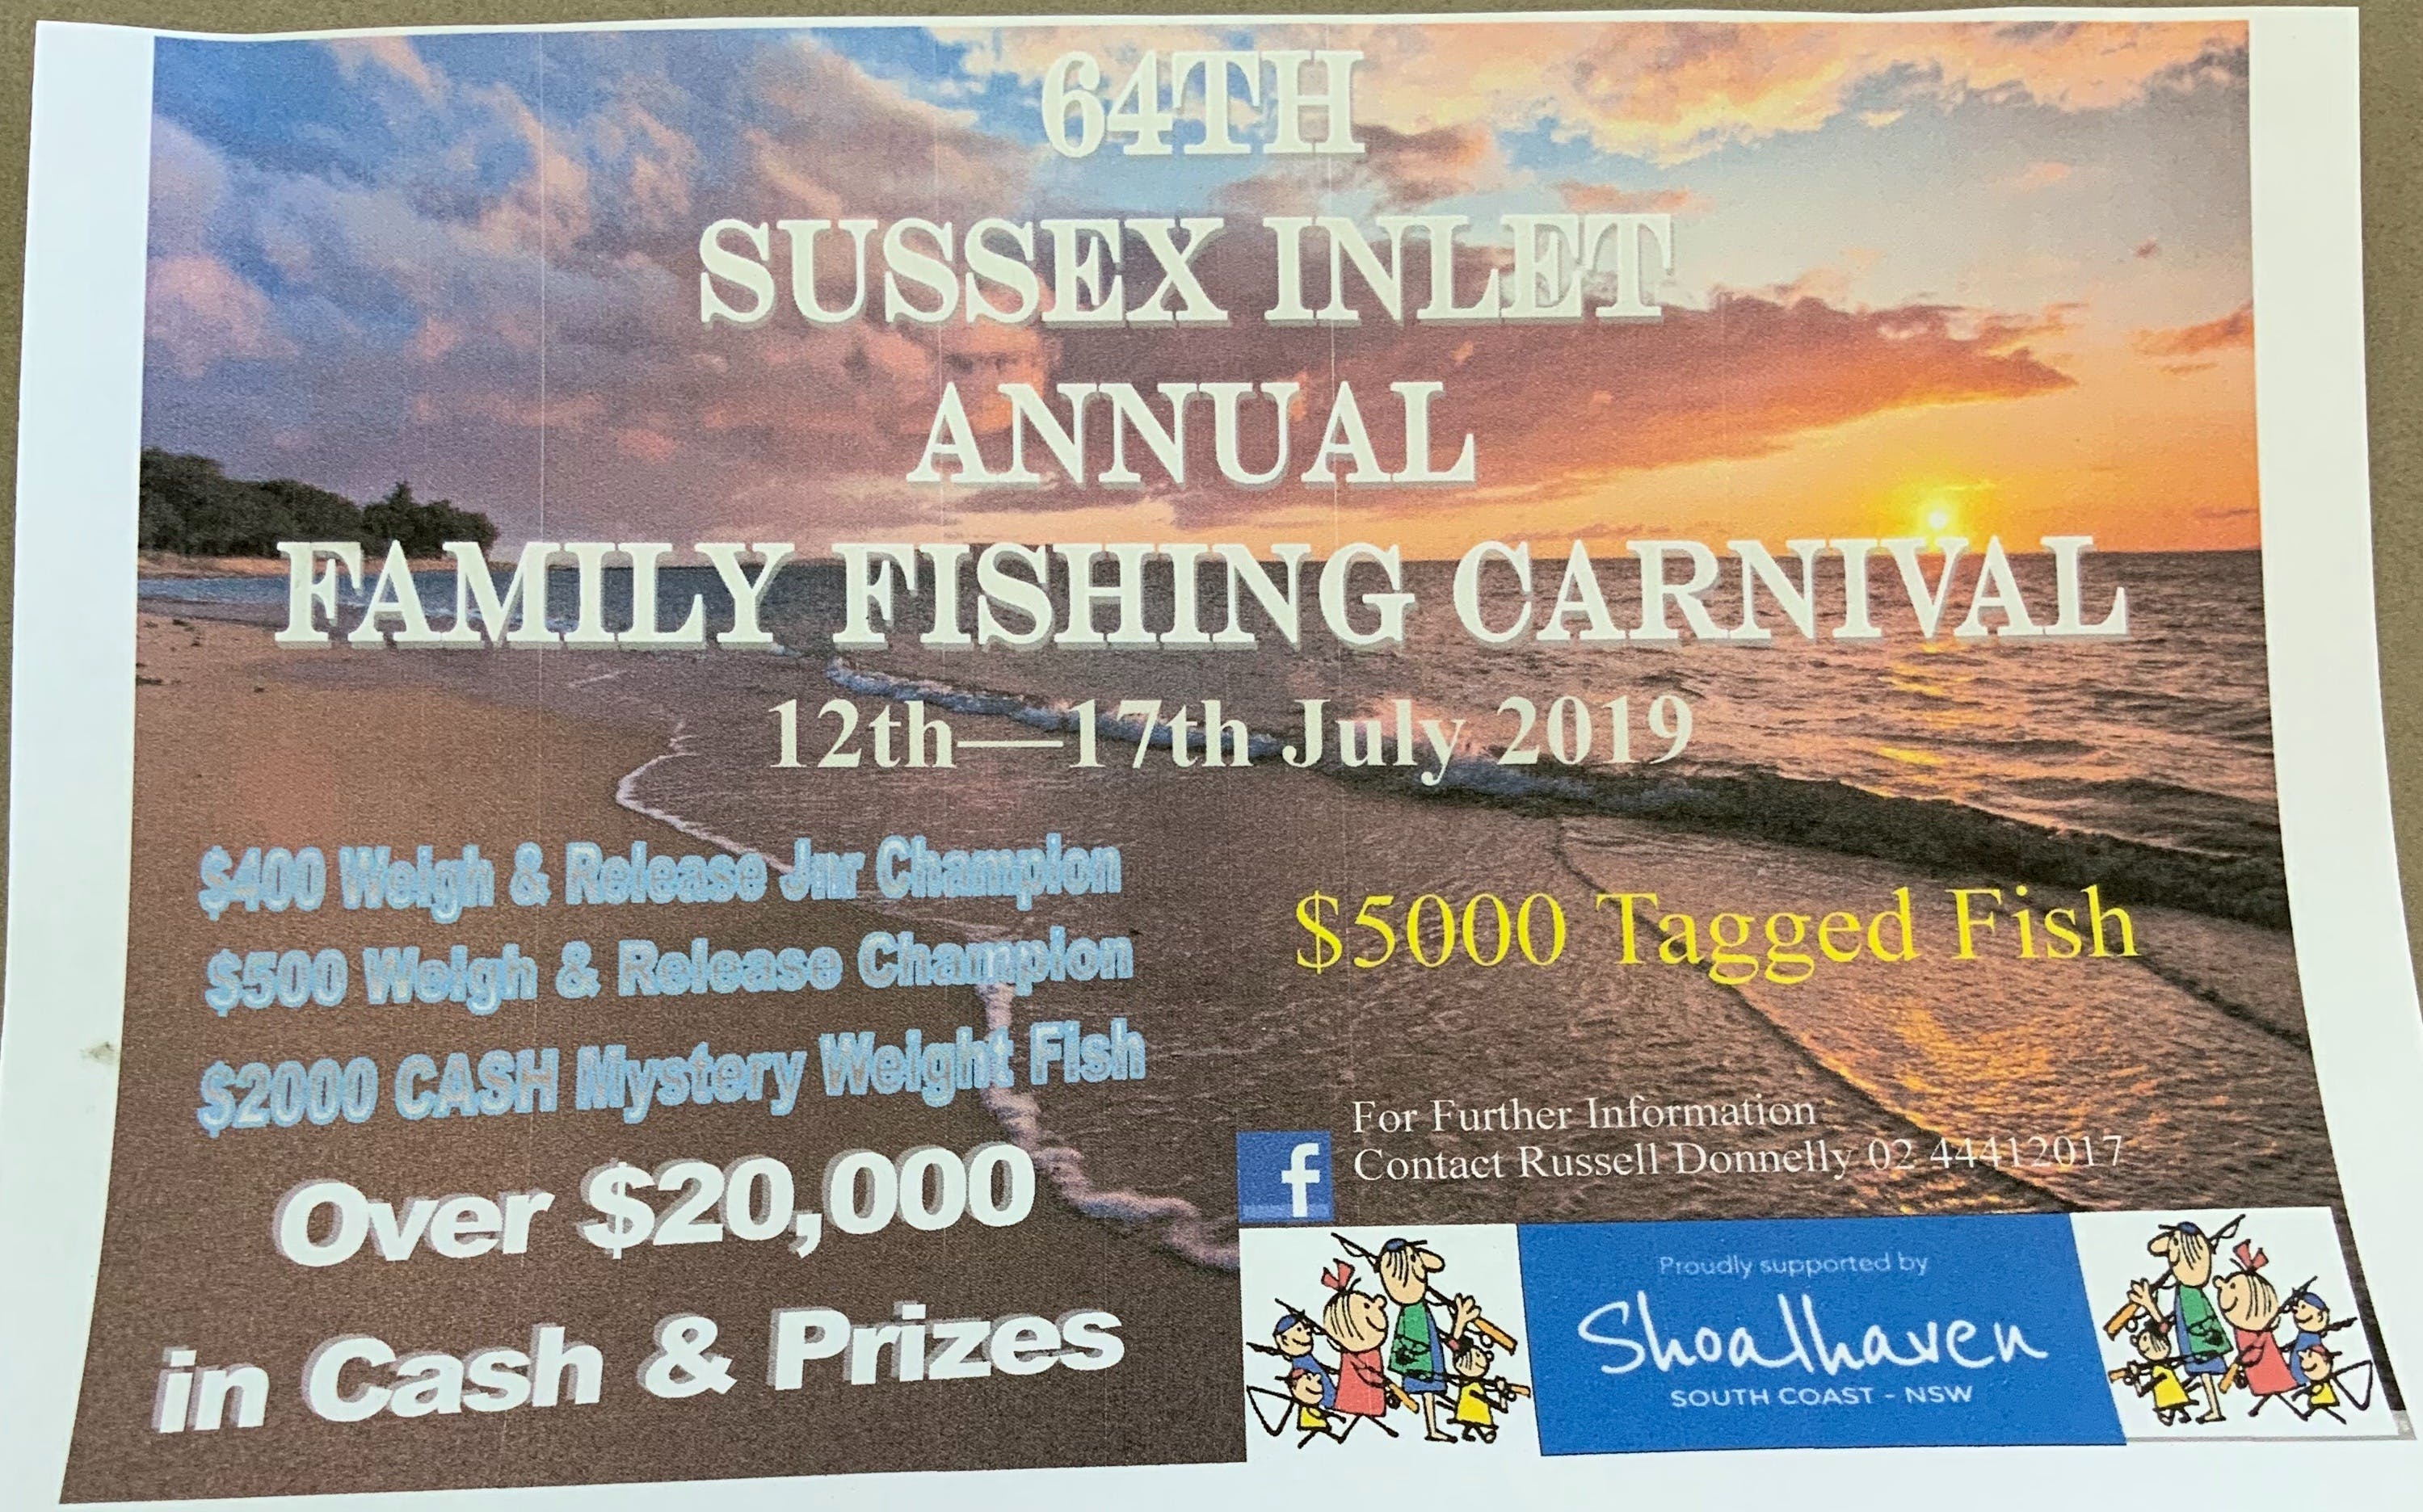 The Sussex Inlet Annual Family Fishing Carnival - Tourism Adelaide